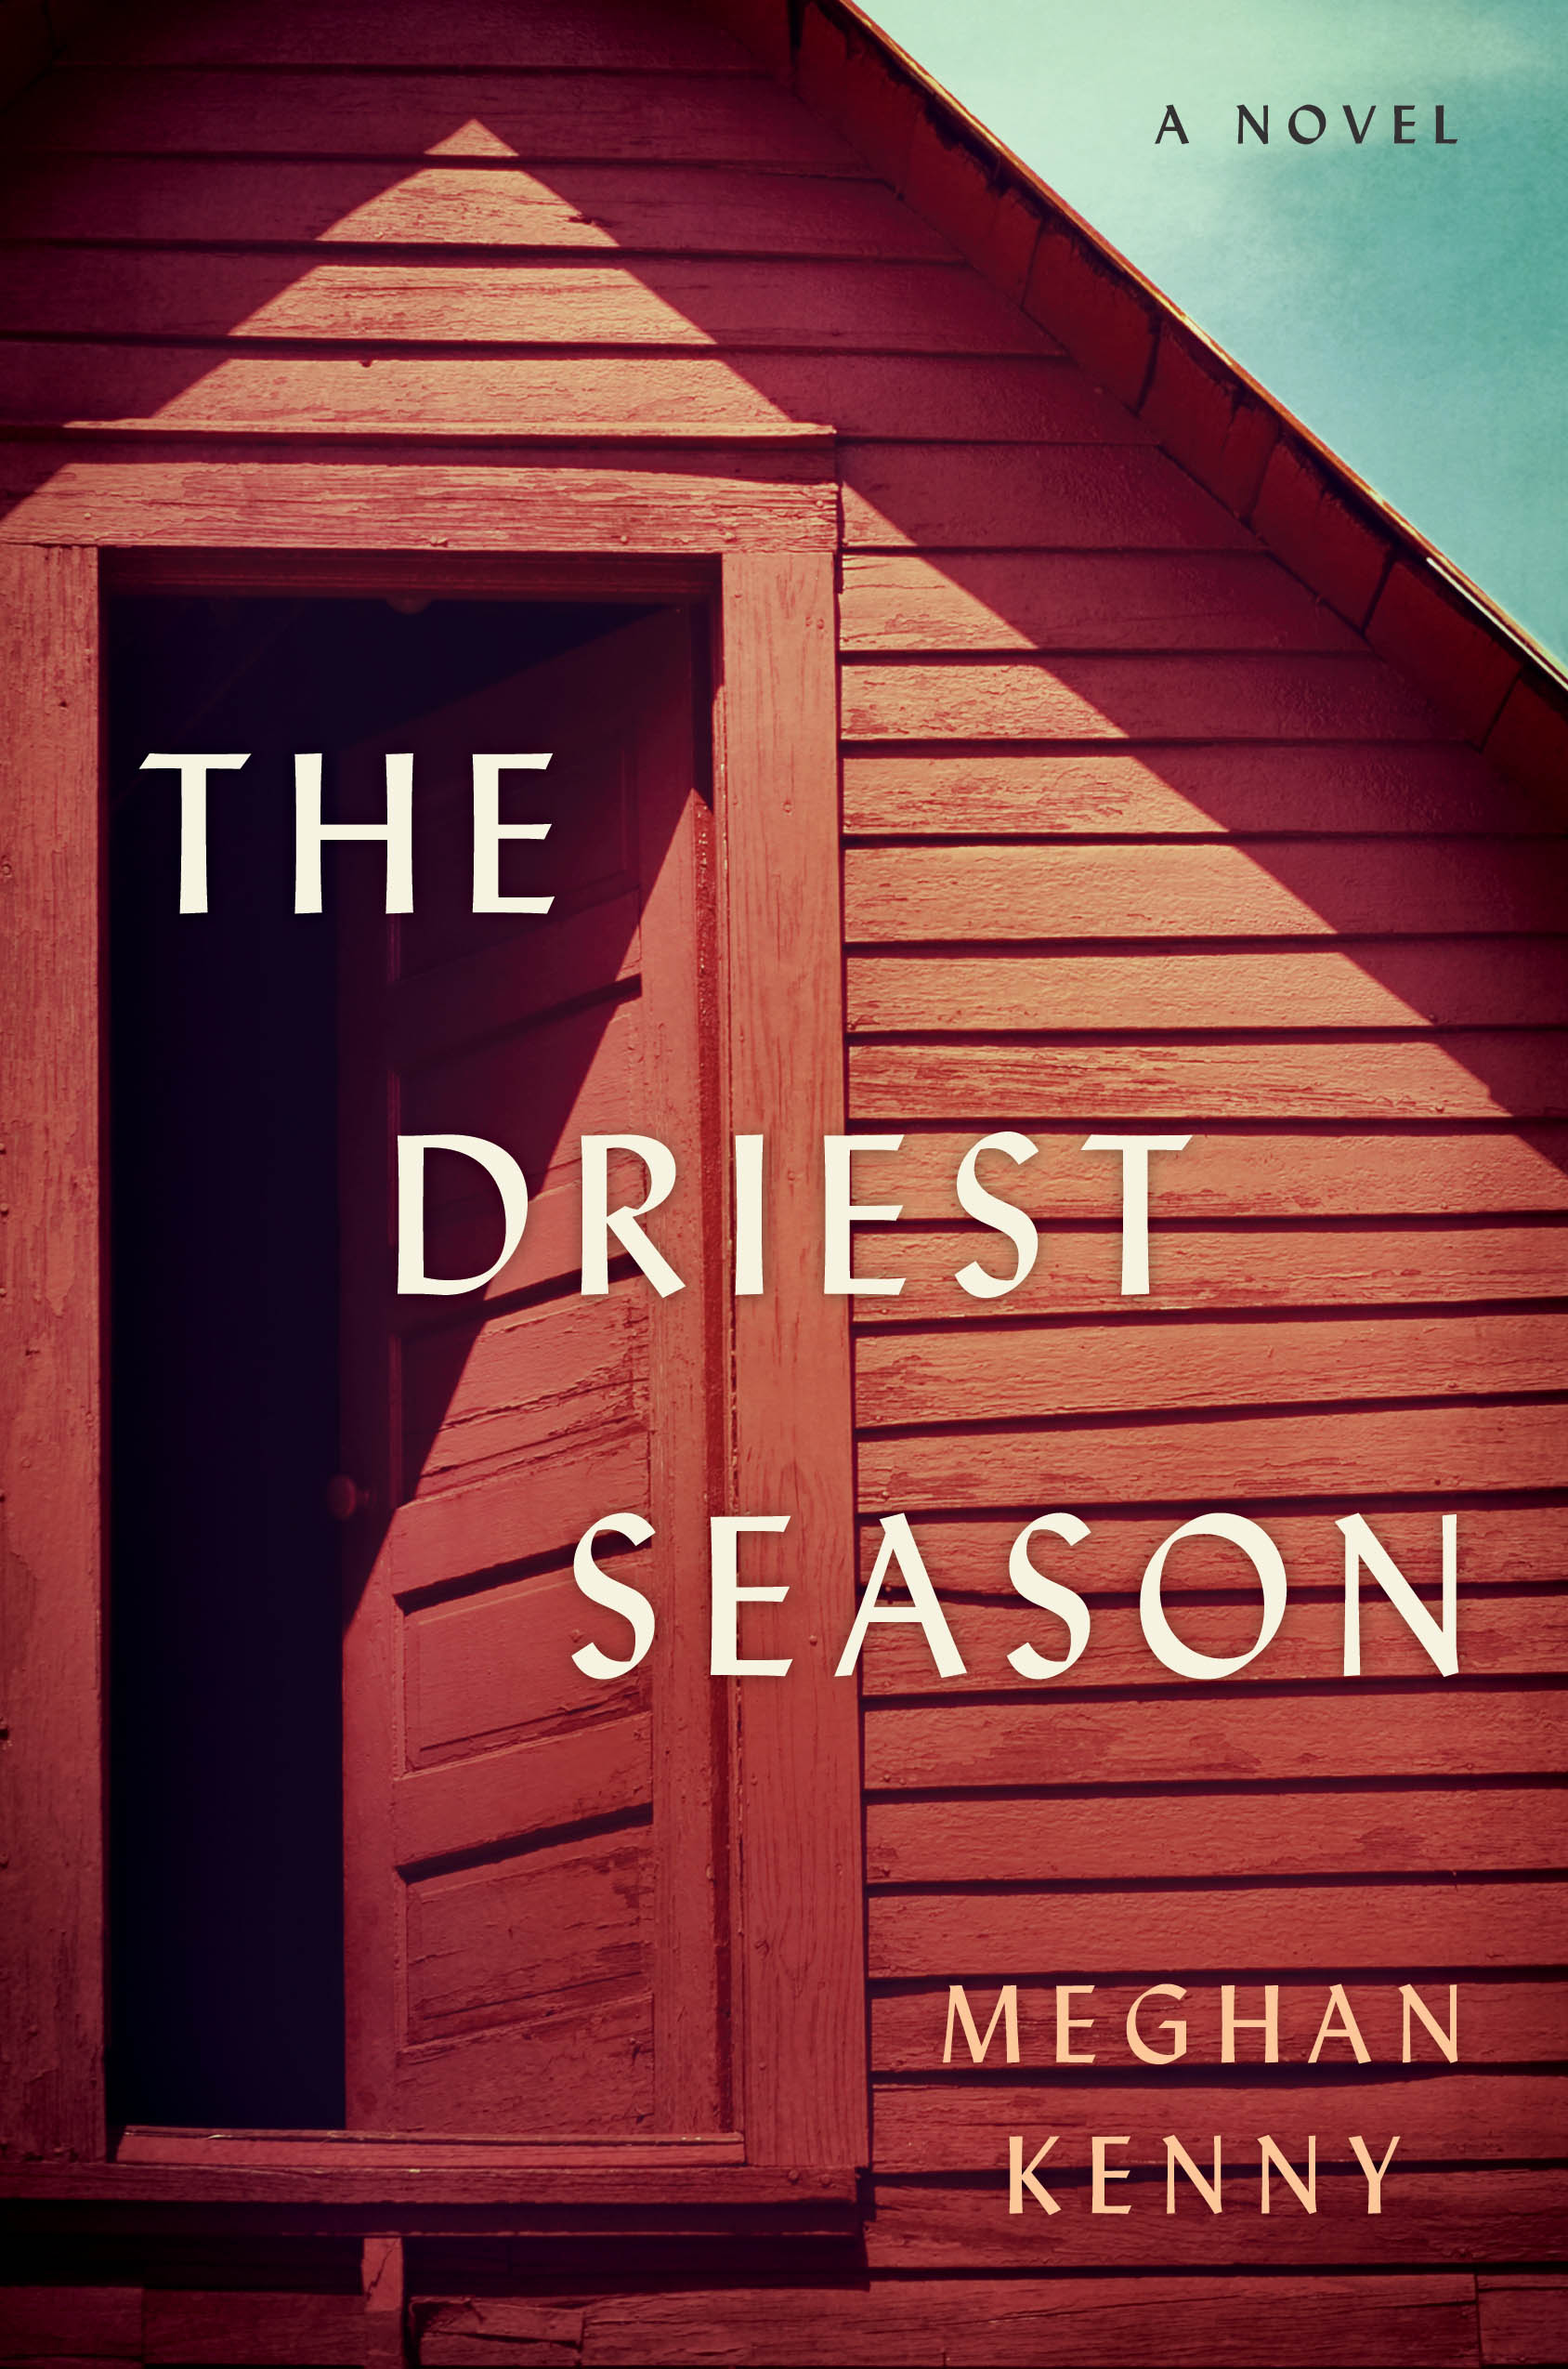 The Driest Season a novel